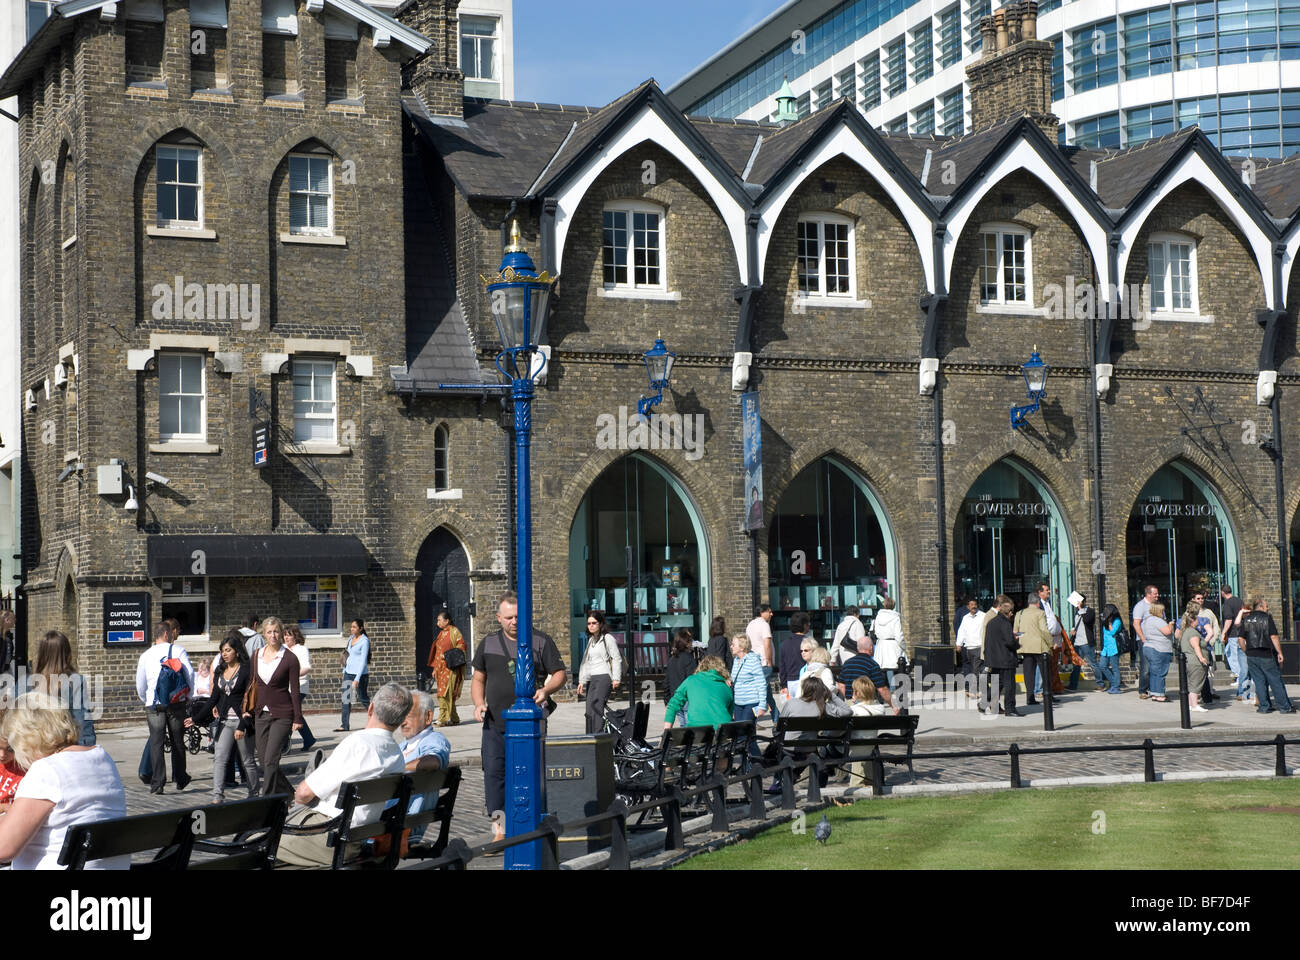 The gift shop outside the Tower of London, London E1 Stock Photo